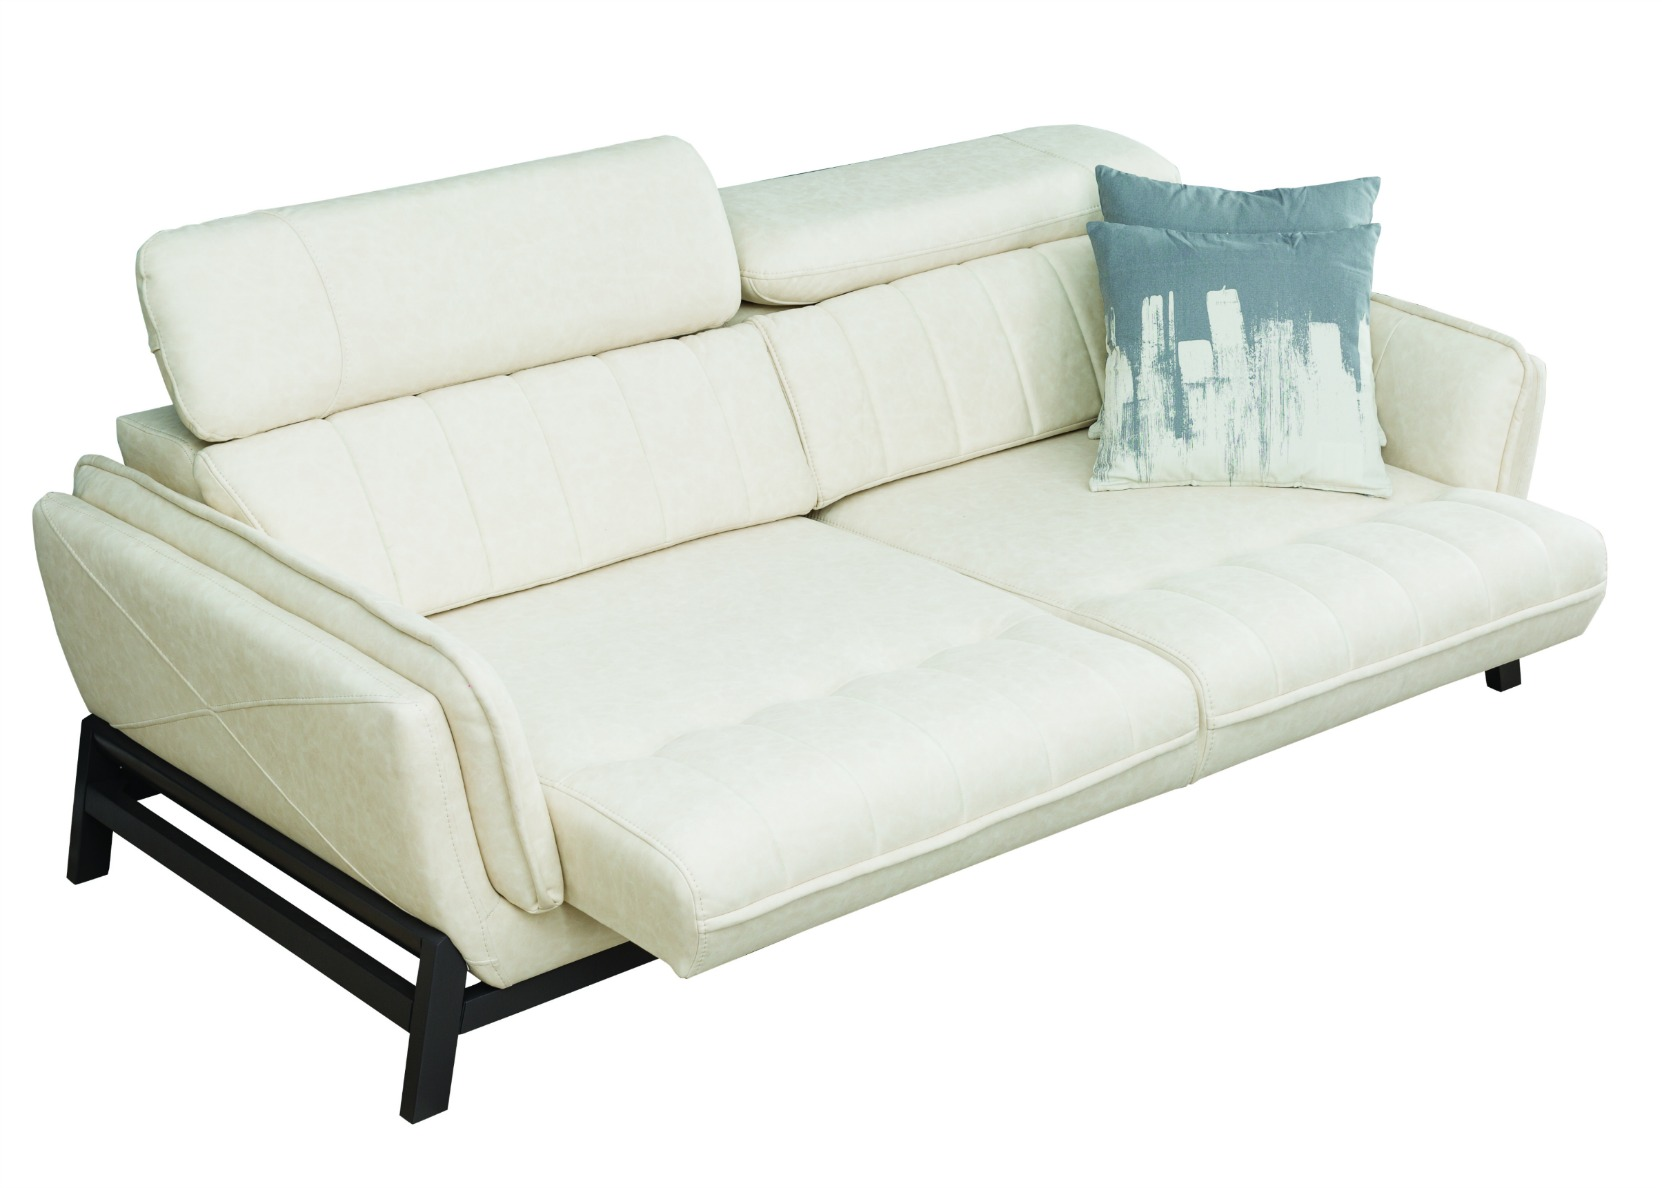 Relax Sofa With Motorized Sliding Seat In White _V4A3541 Copy 0 _V4A3547  Copy 0 ...